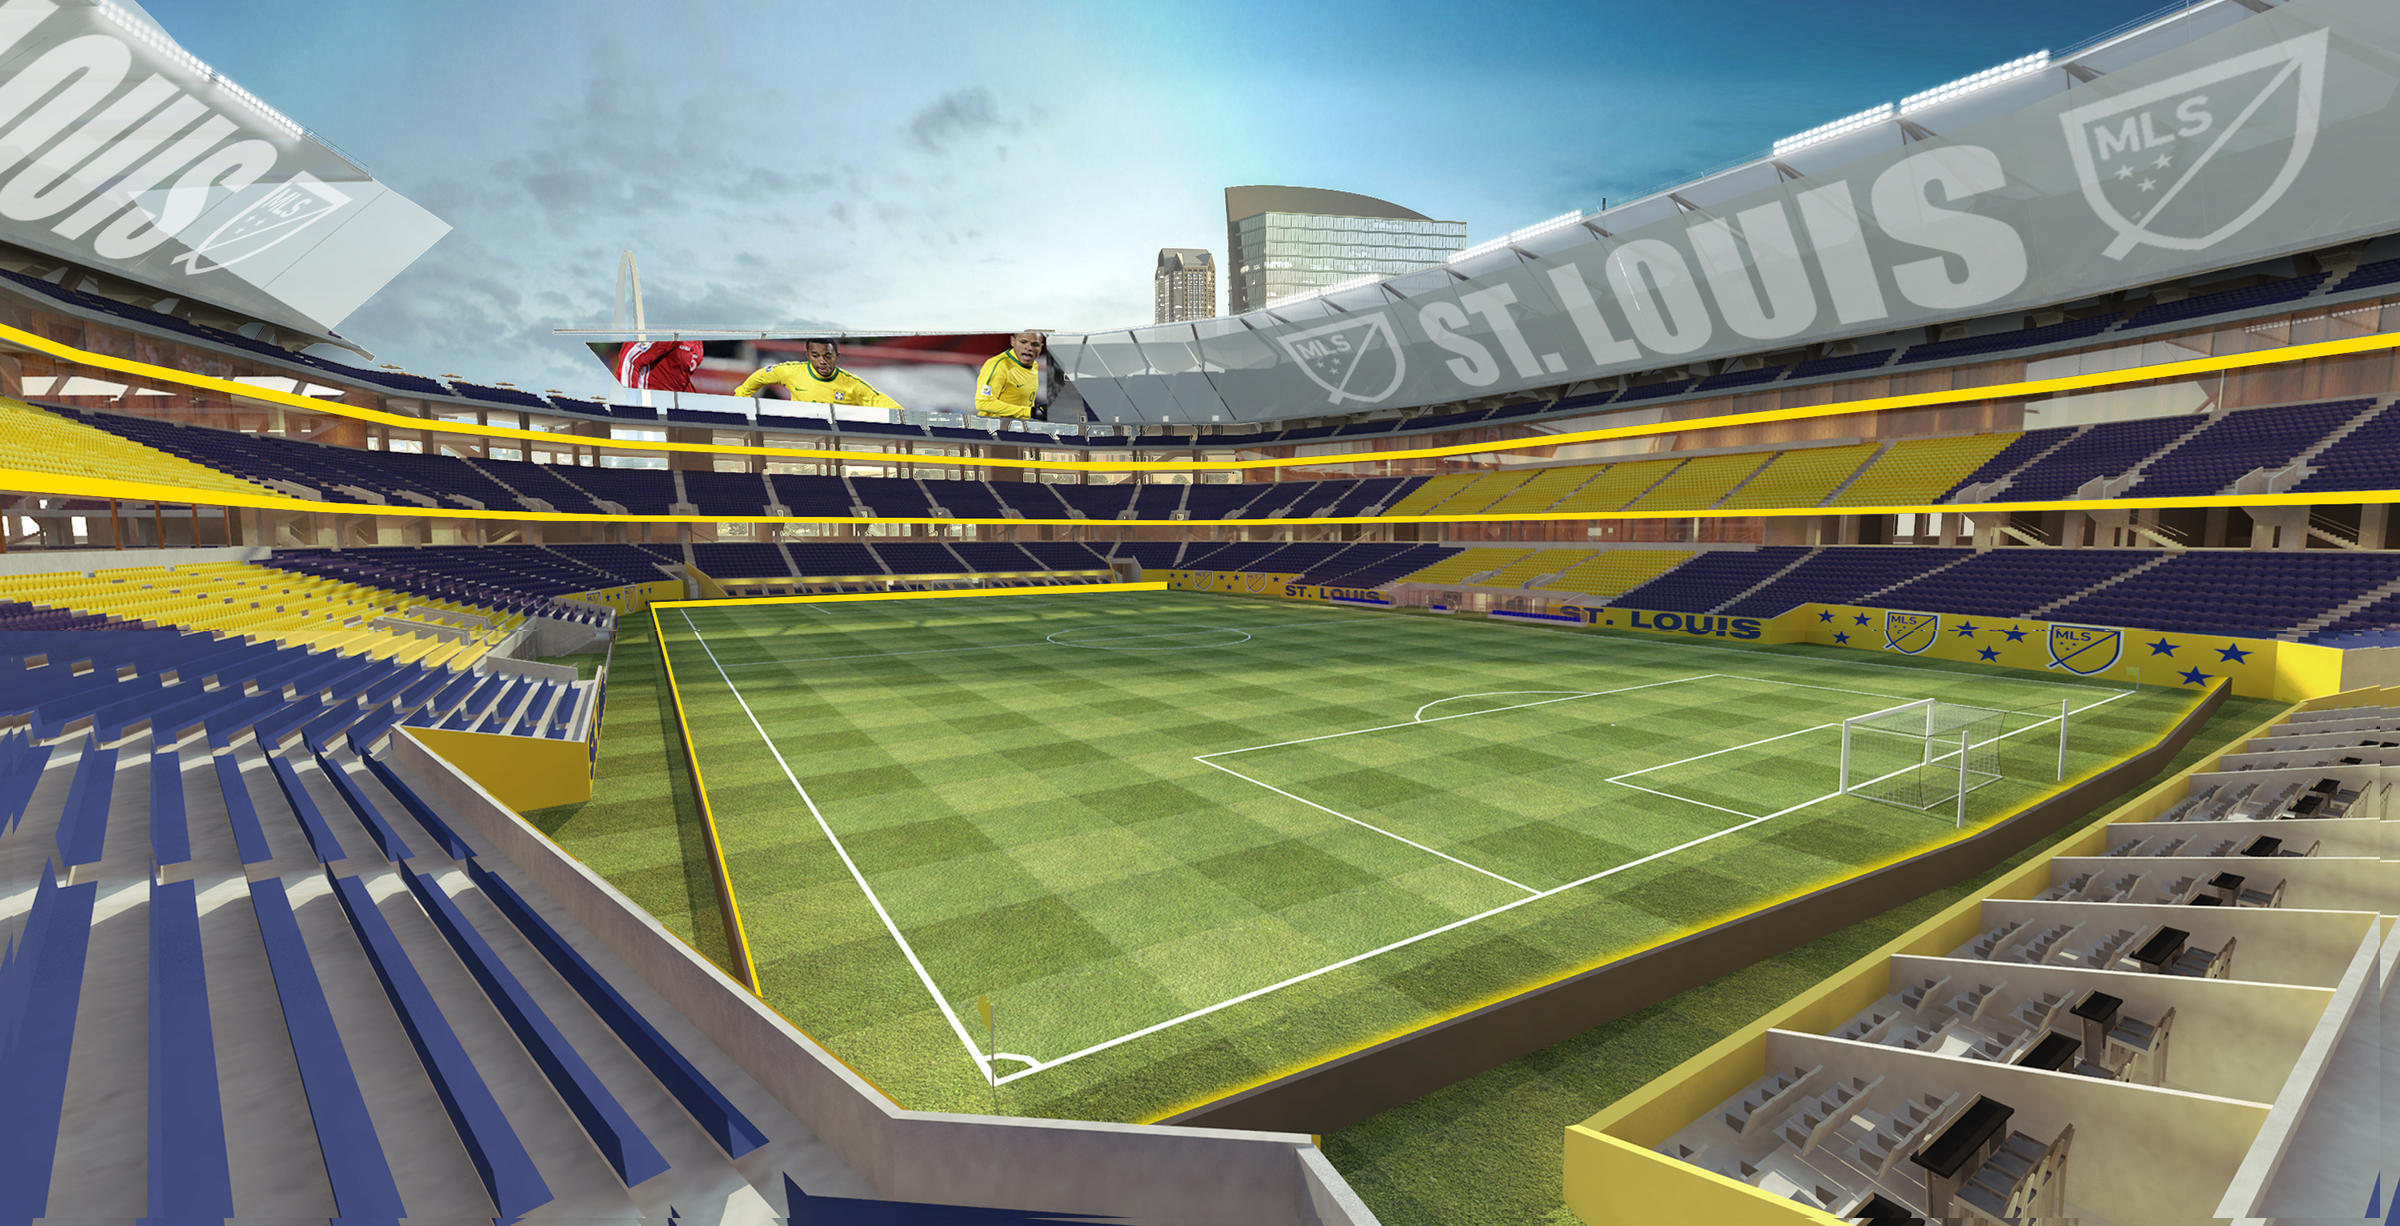 Stadium measure's defeat likely ends St. Louis' MLS chances